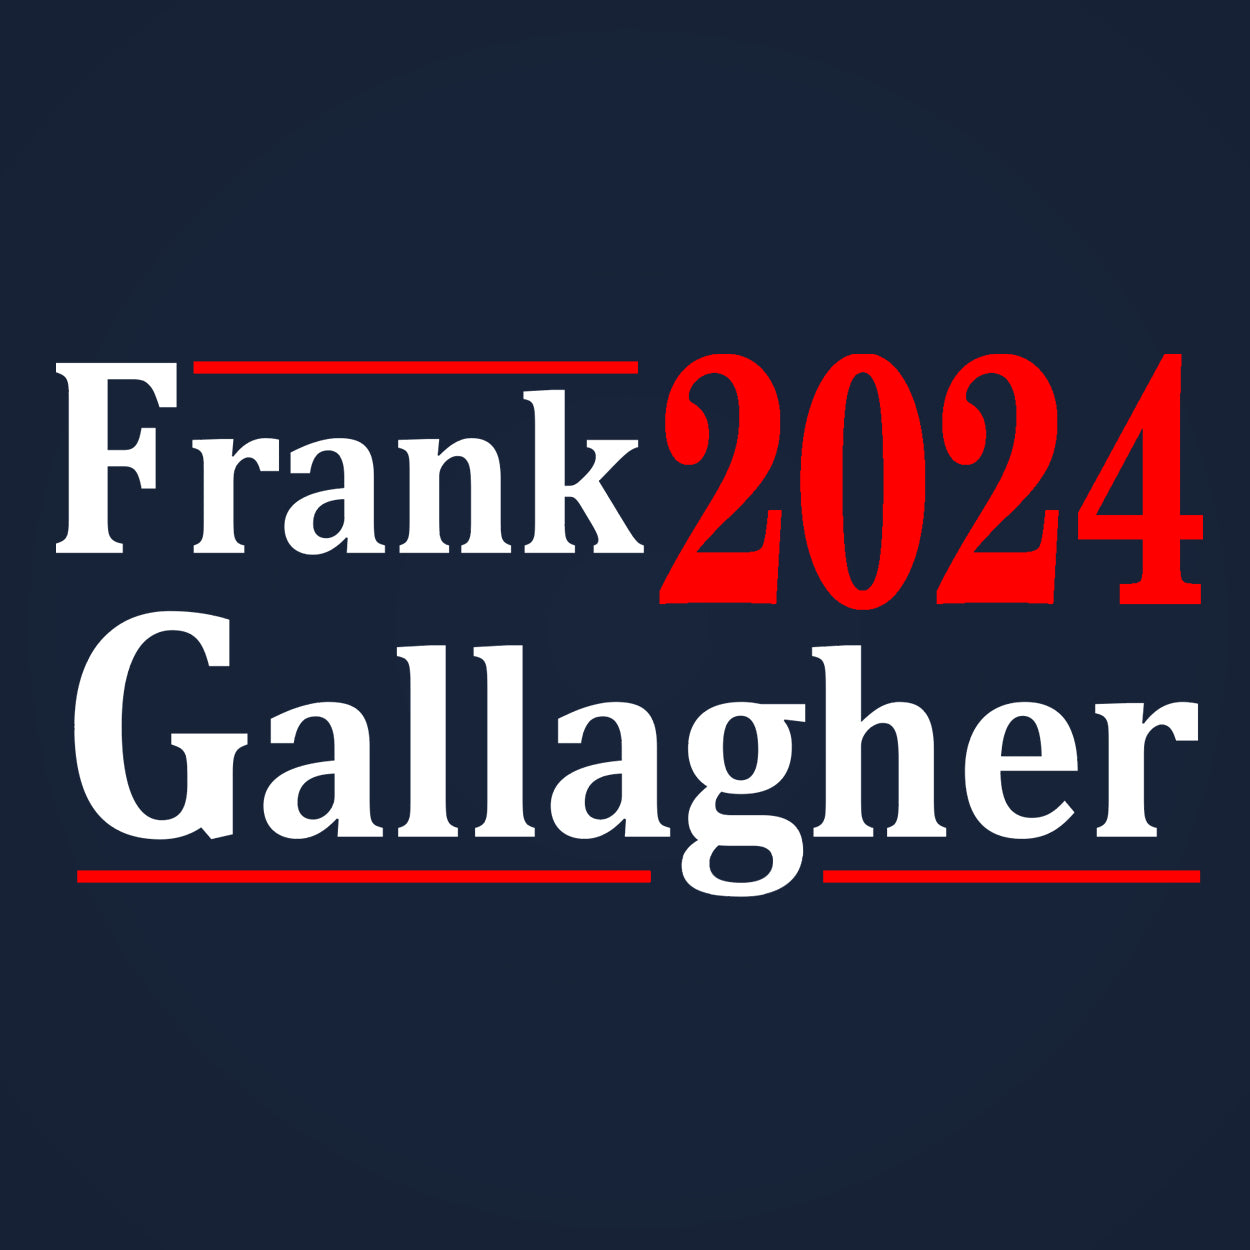 Frank Gallagher 2020 ELECTION - DonkeyTees